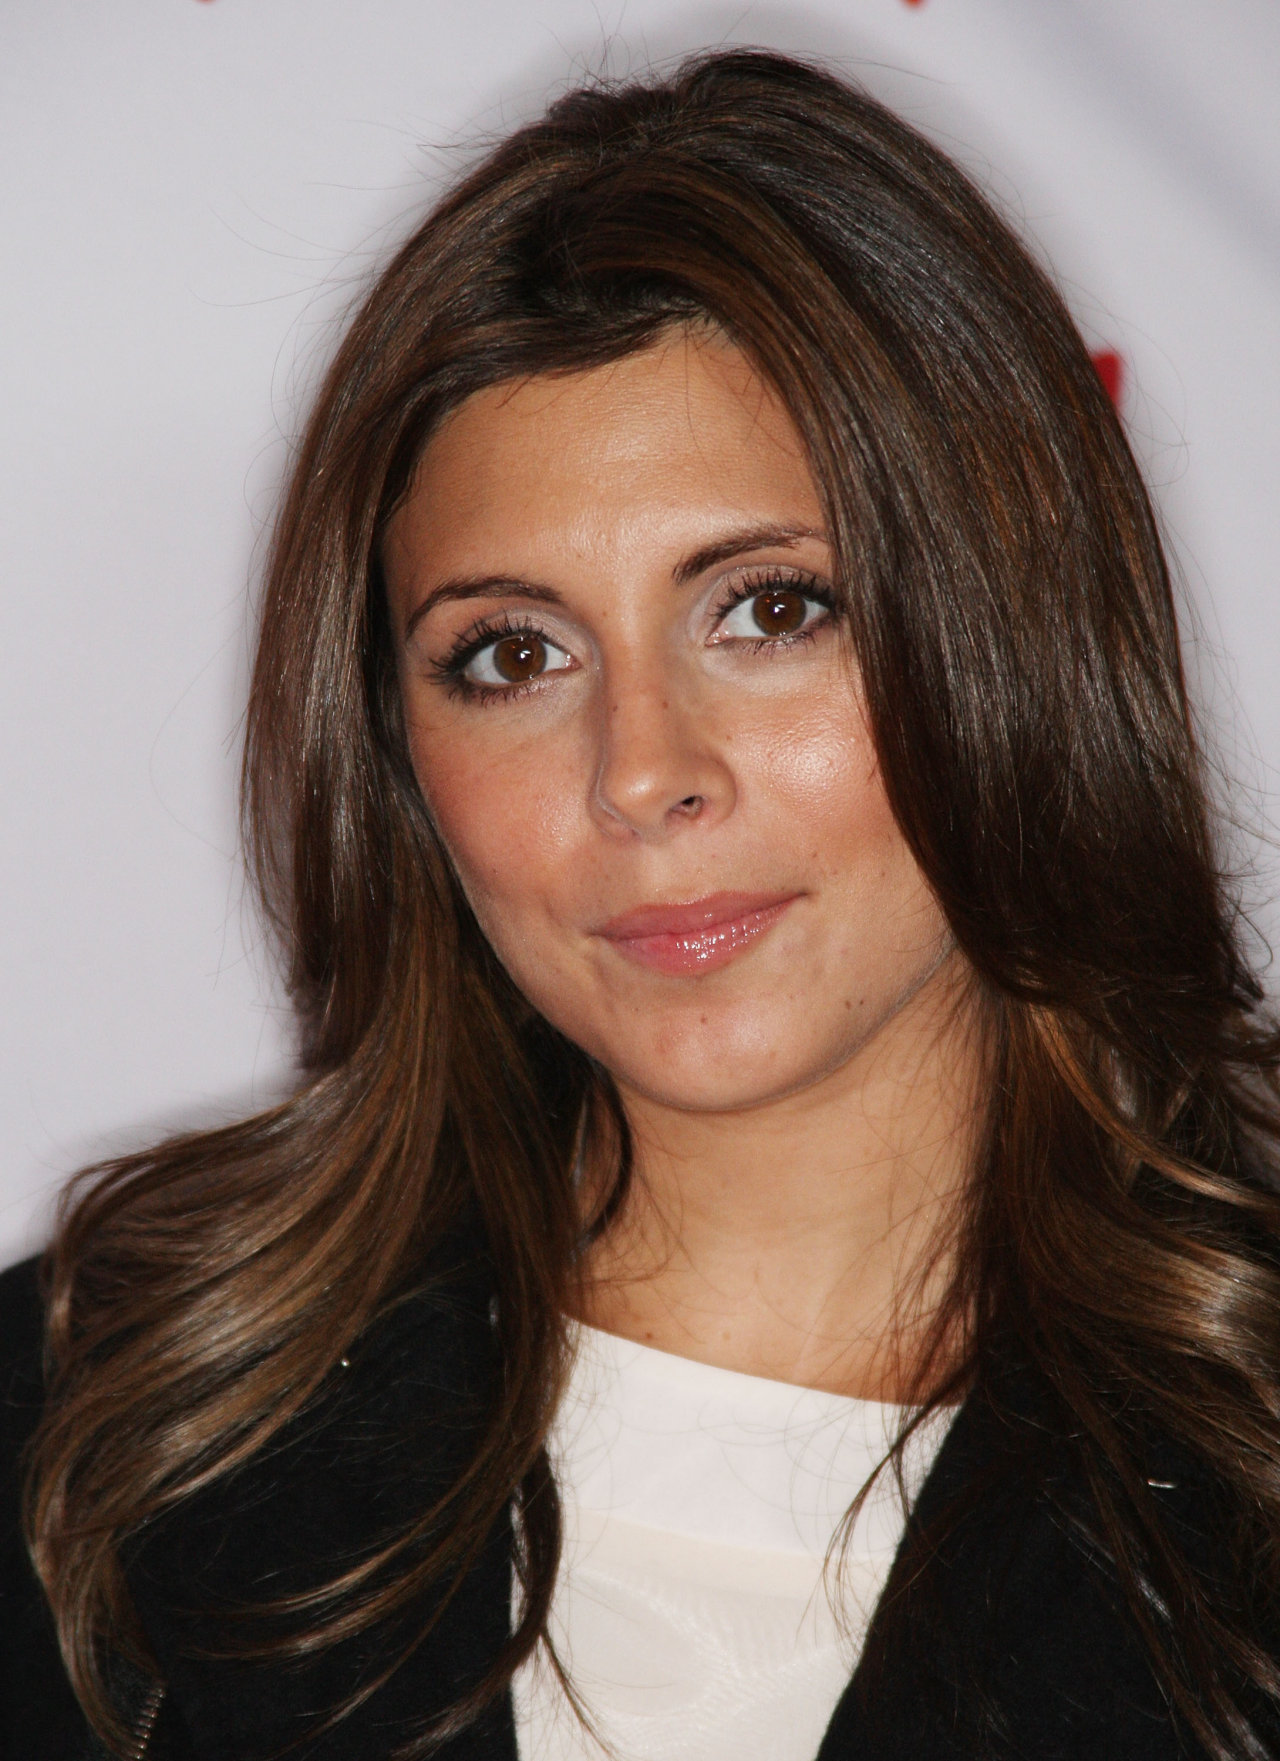 Jamie-Lynn Sigler leaked wallpapers